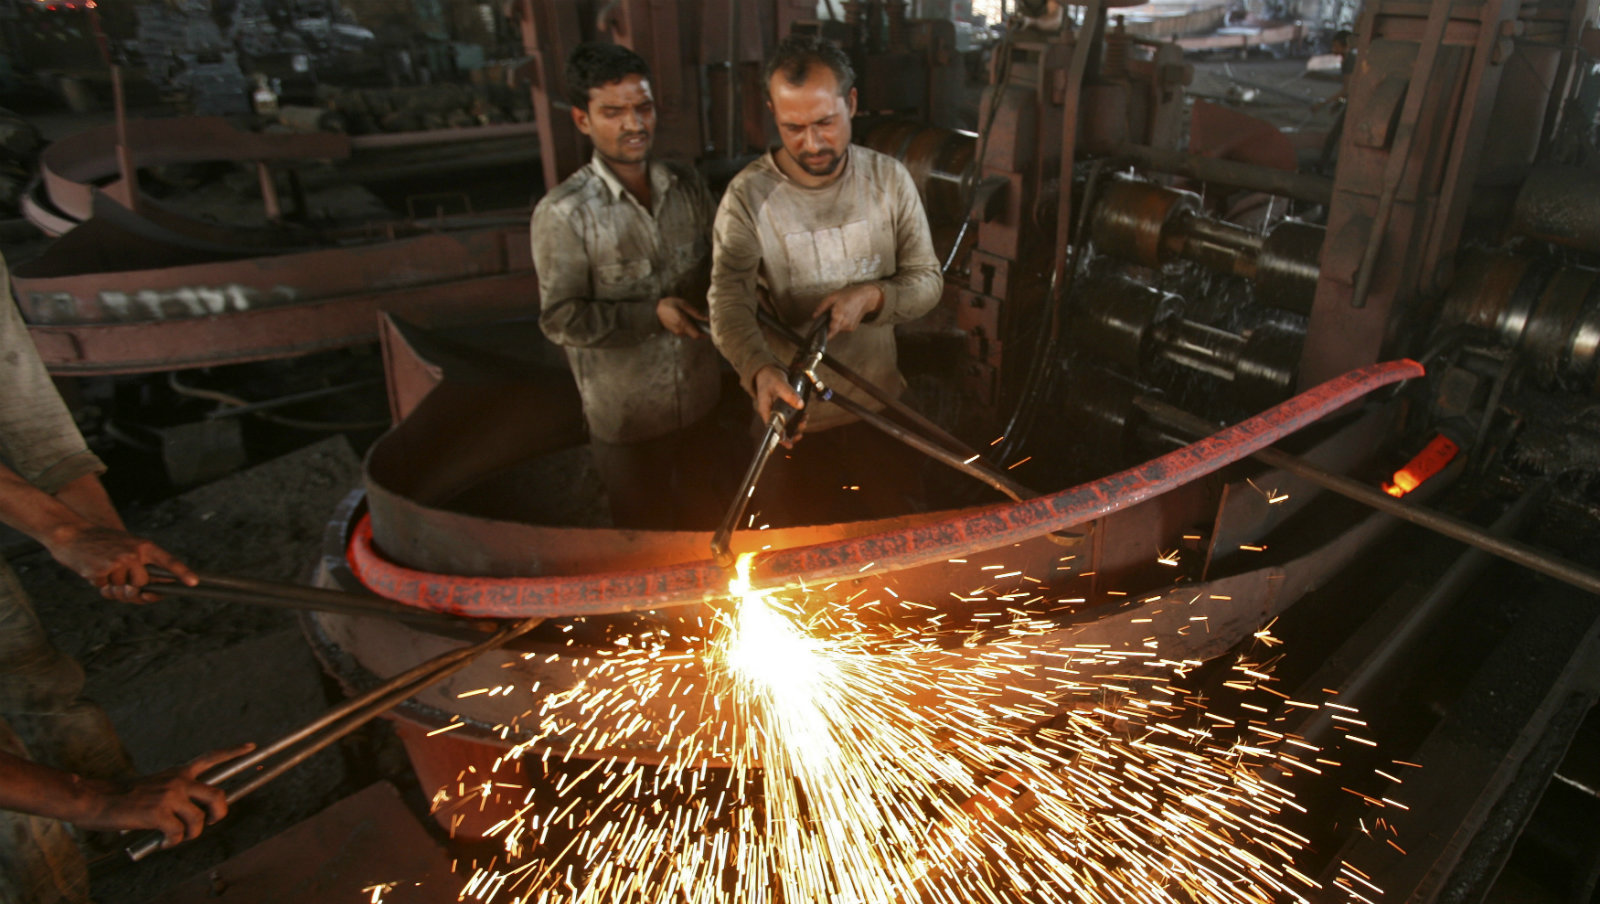 Labourers work inside an iron factory on the outskirts of Jammu November 12, 2012. India's economic gloom deepened on Monday with a surprise contraction in industrial production, a fall in exports and higher retail inflation, dashing hopes of a quick revival in an economy on track to post its slowest growth in a decade.